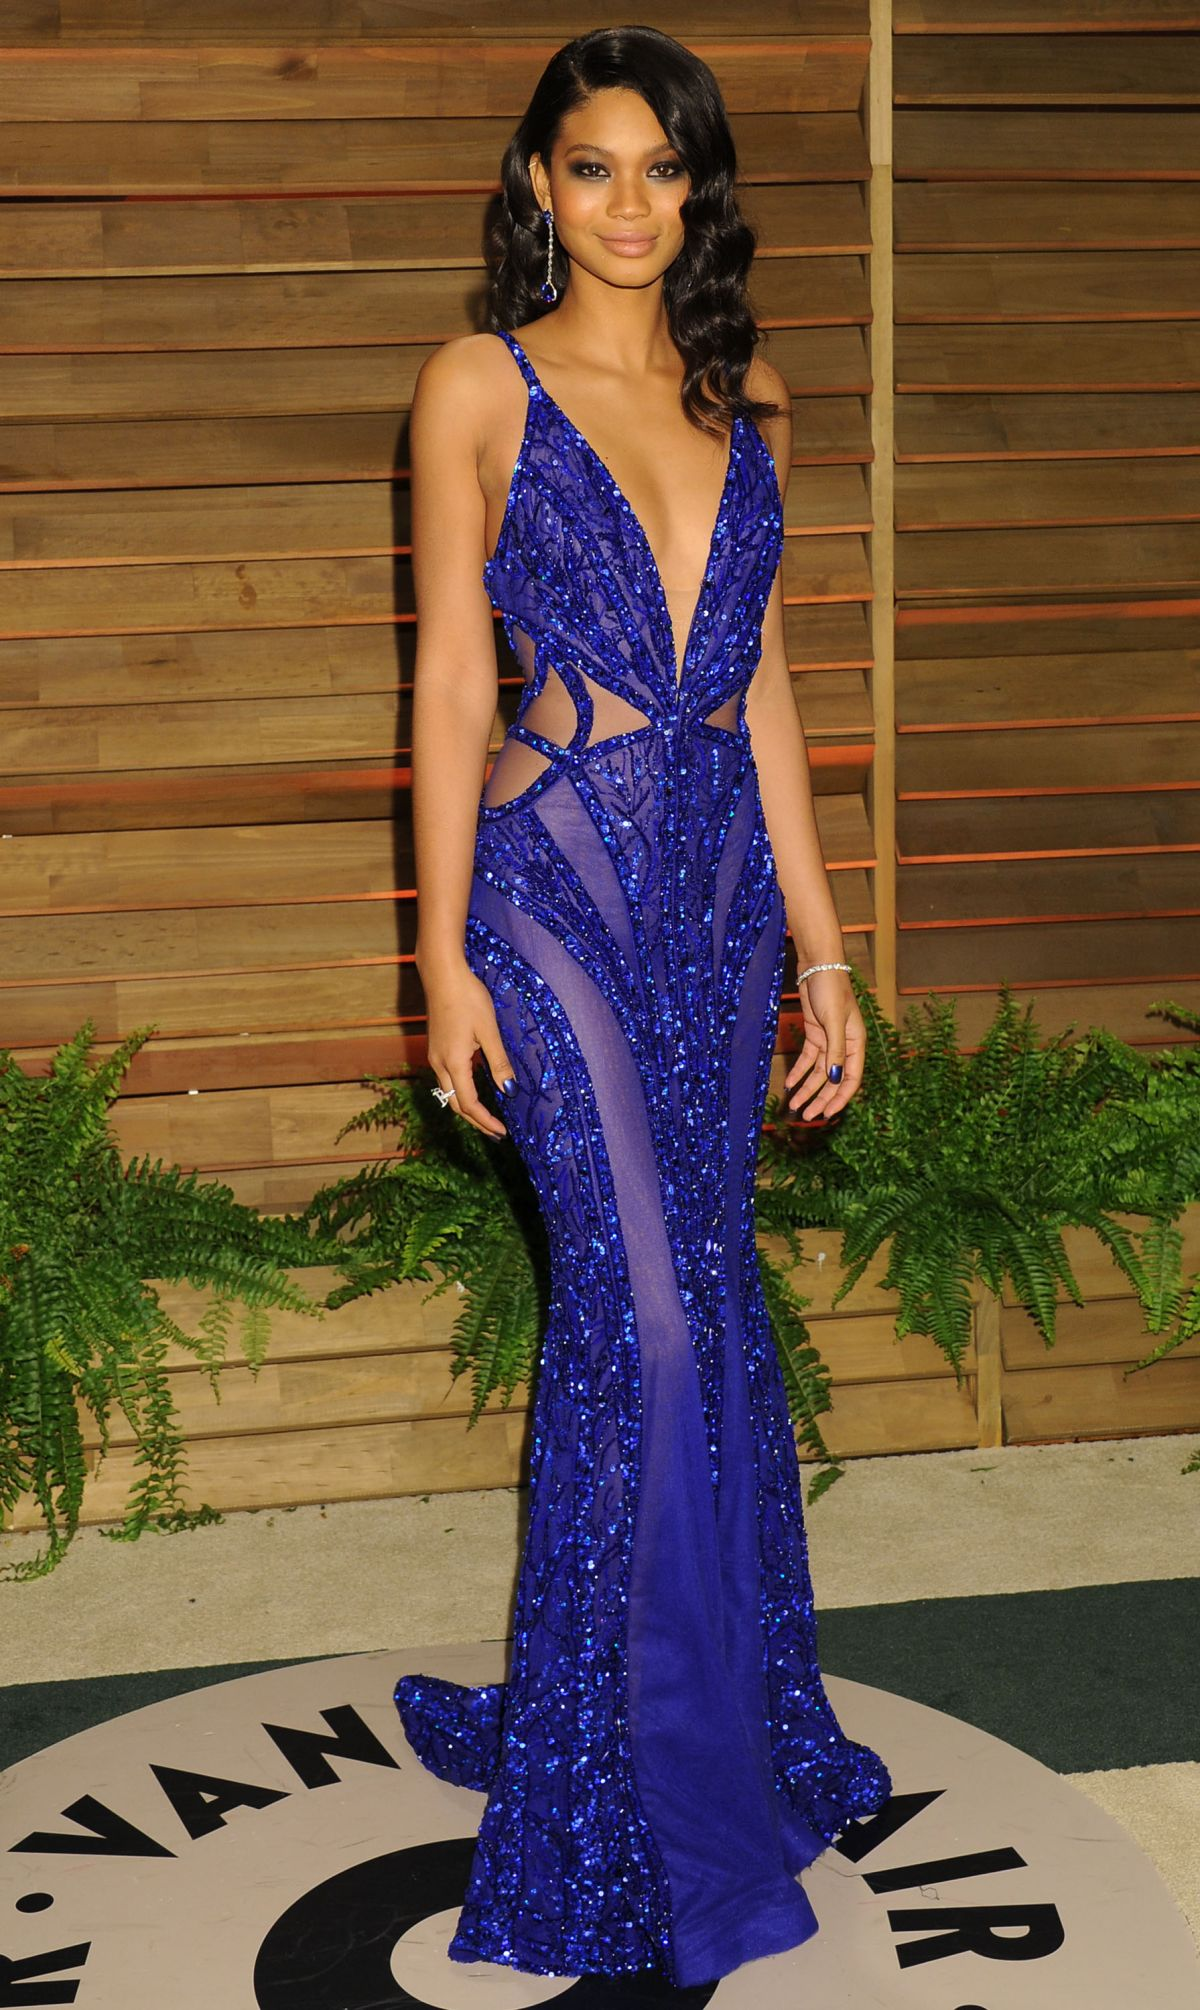 CHANEL IMAN at Vanity Fair Oscar Party in Hollywood